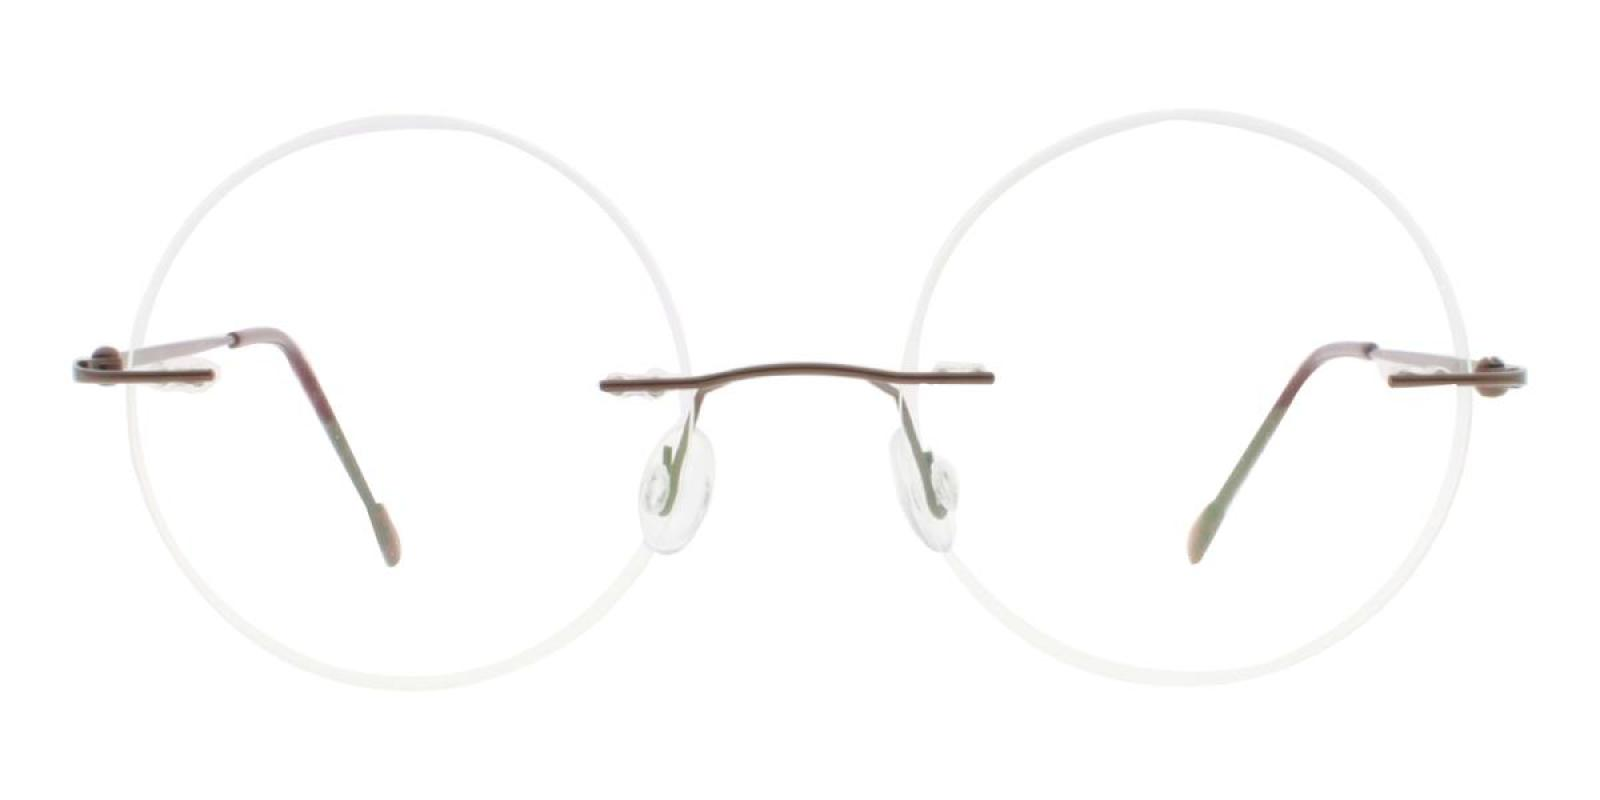 Knewphey-Brown-Varieties-Metal-Eyeglasses-additional2